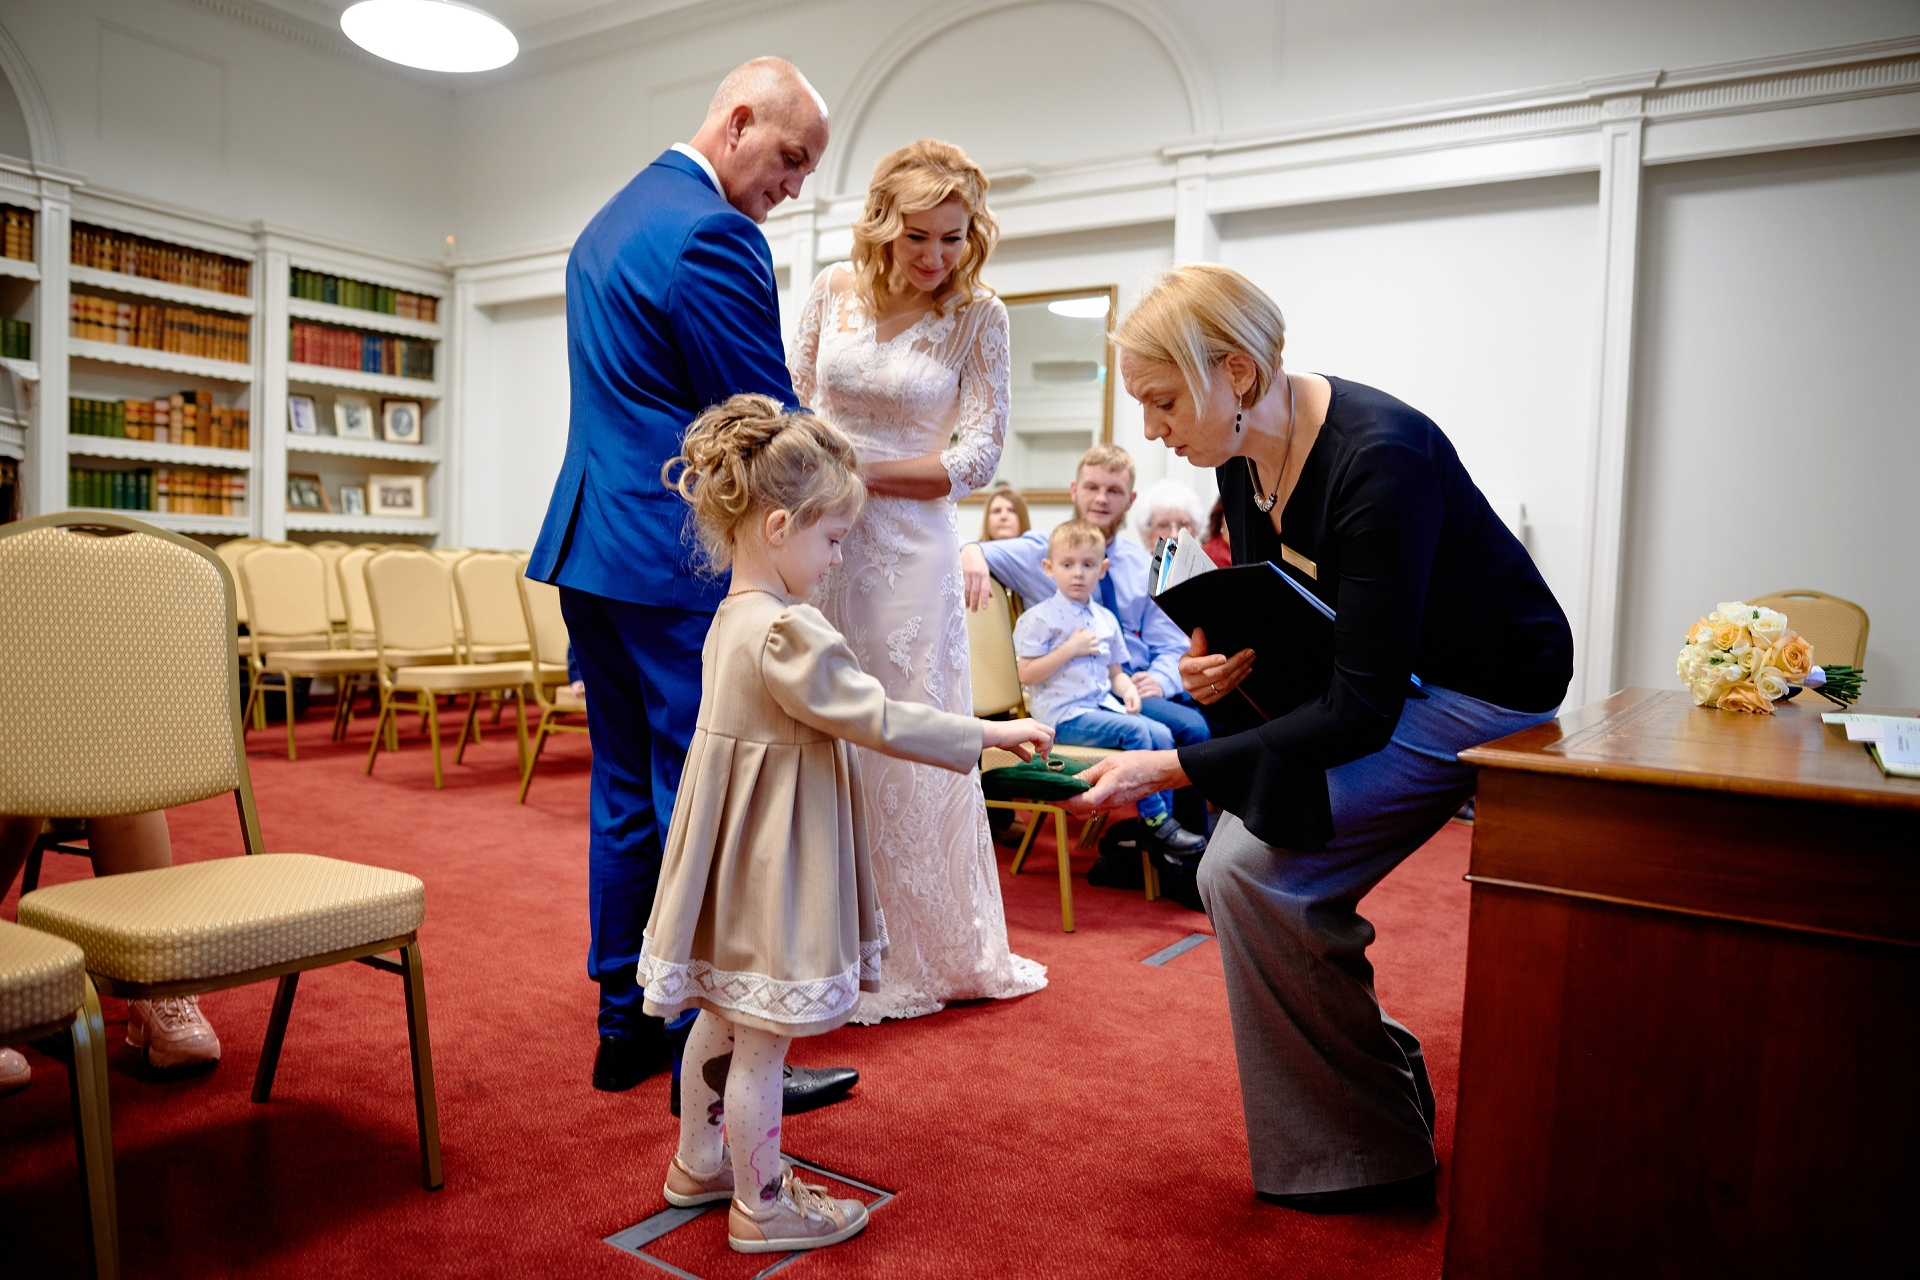 Wiltshire / Salisbury Wedding Photographers | The young girl was offered the role of flower girl and ring bearer